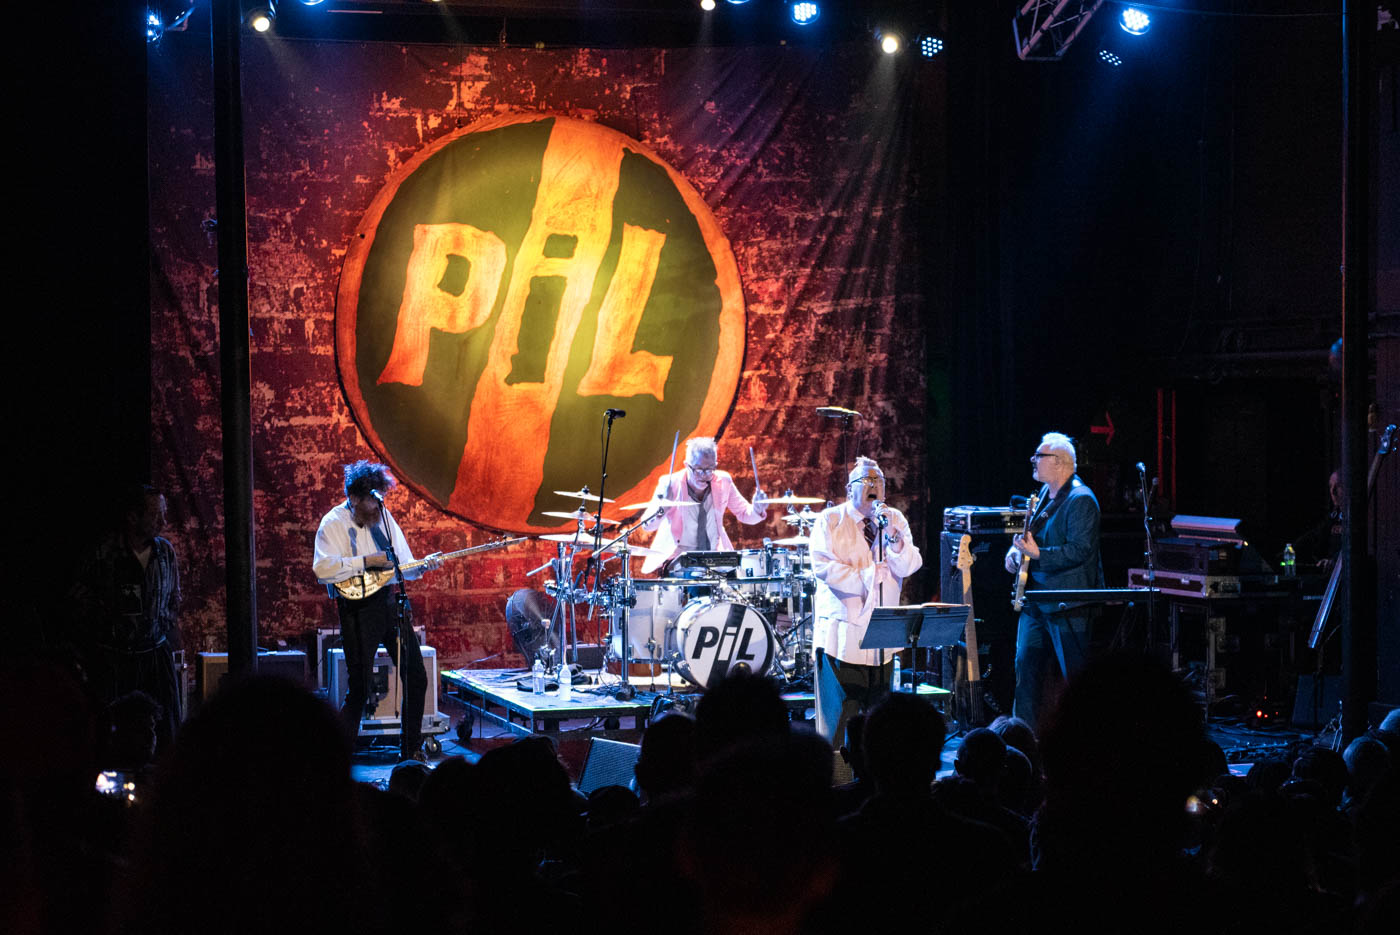 Public Image Ltd. @ The Observatory 11/4/18. Photo by Greg Jacobs (@ribshots). Used with permission.